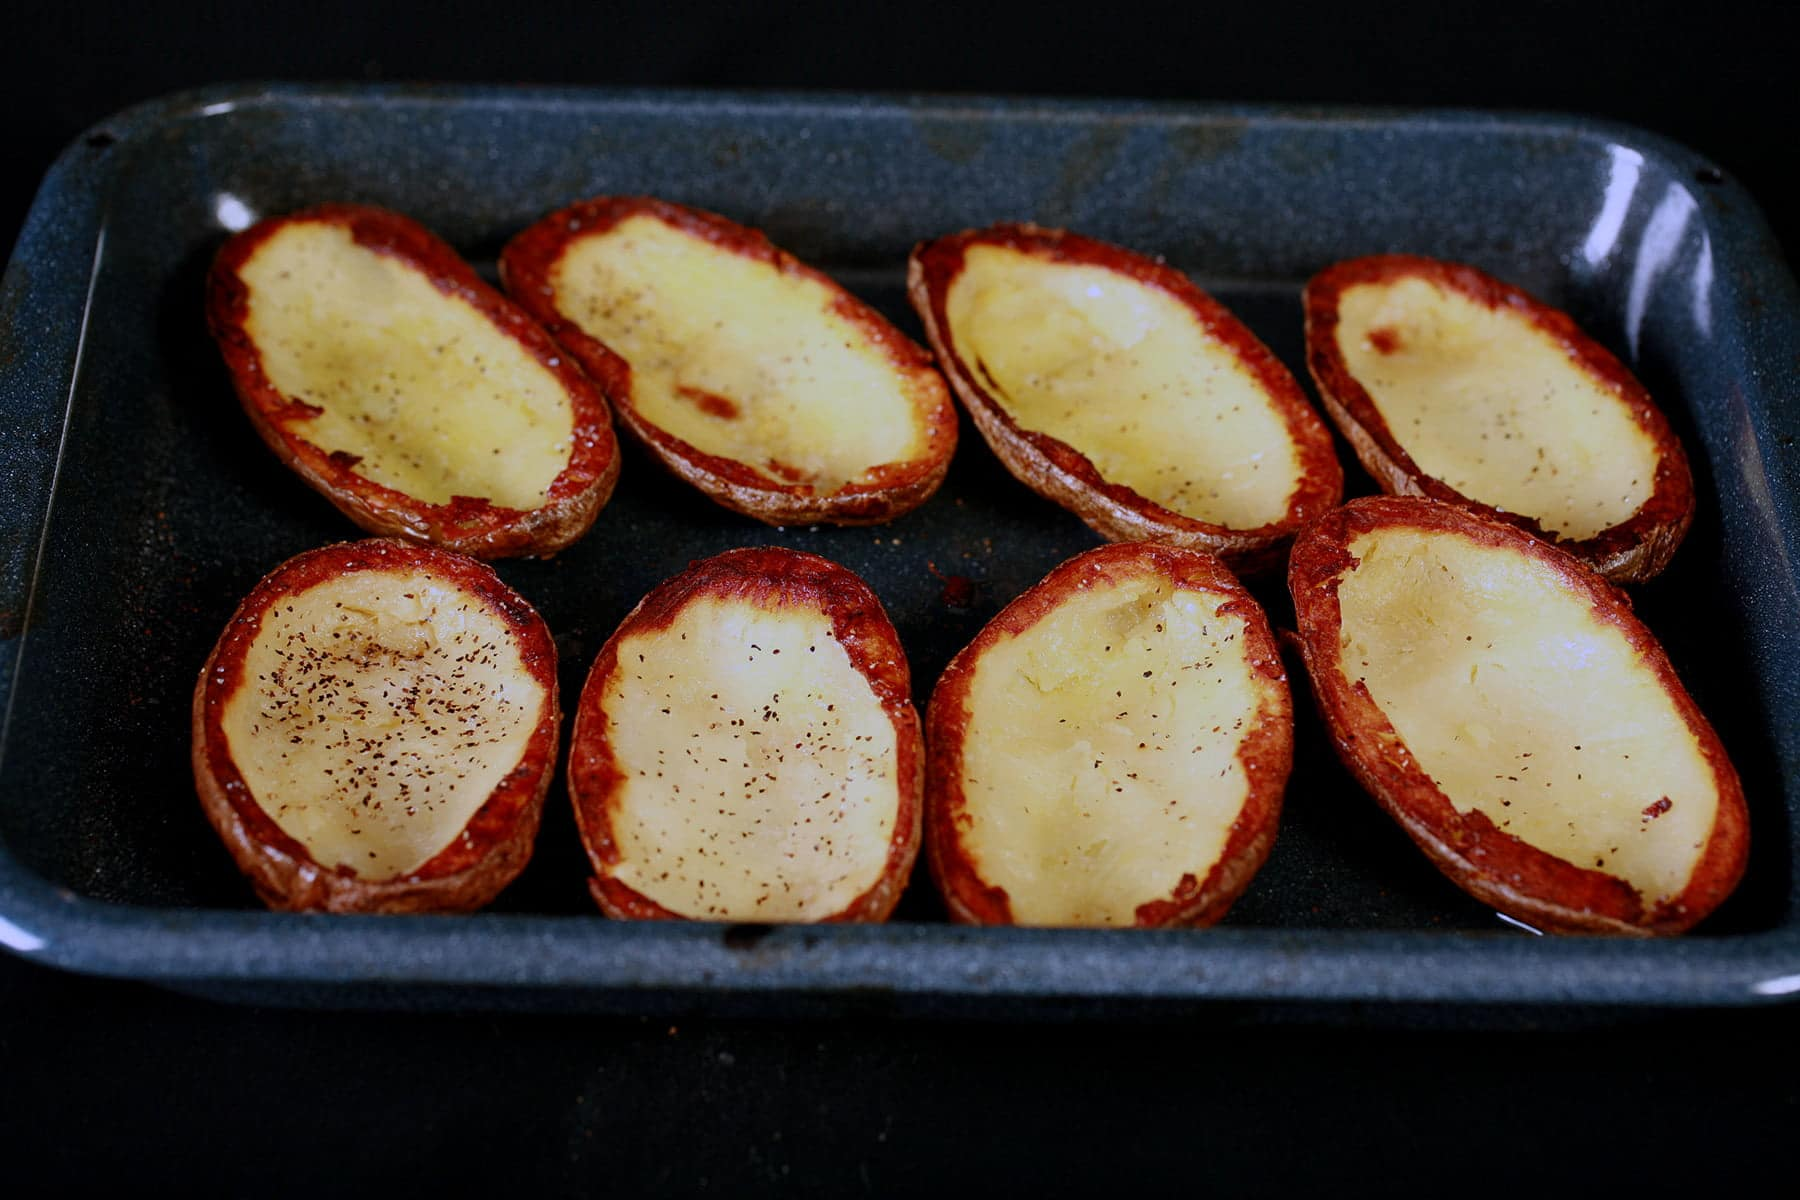 Hollowed out potato skins are arranged on a roasting pan. The upper edges are nicely browned.